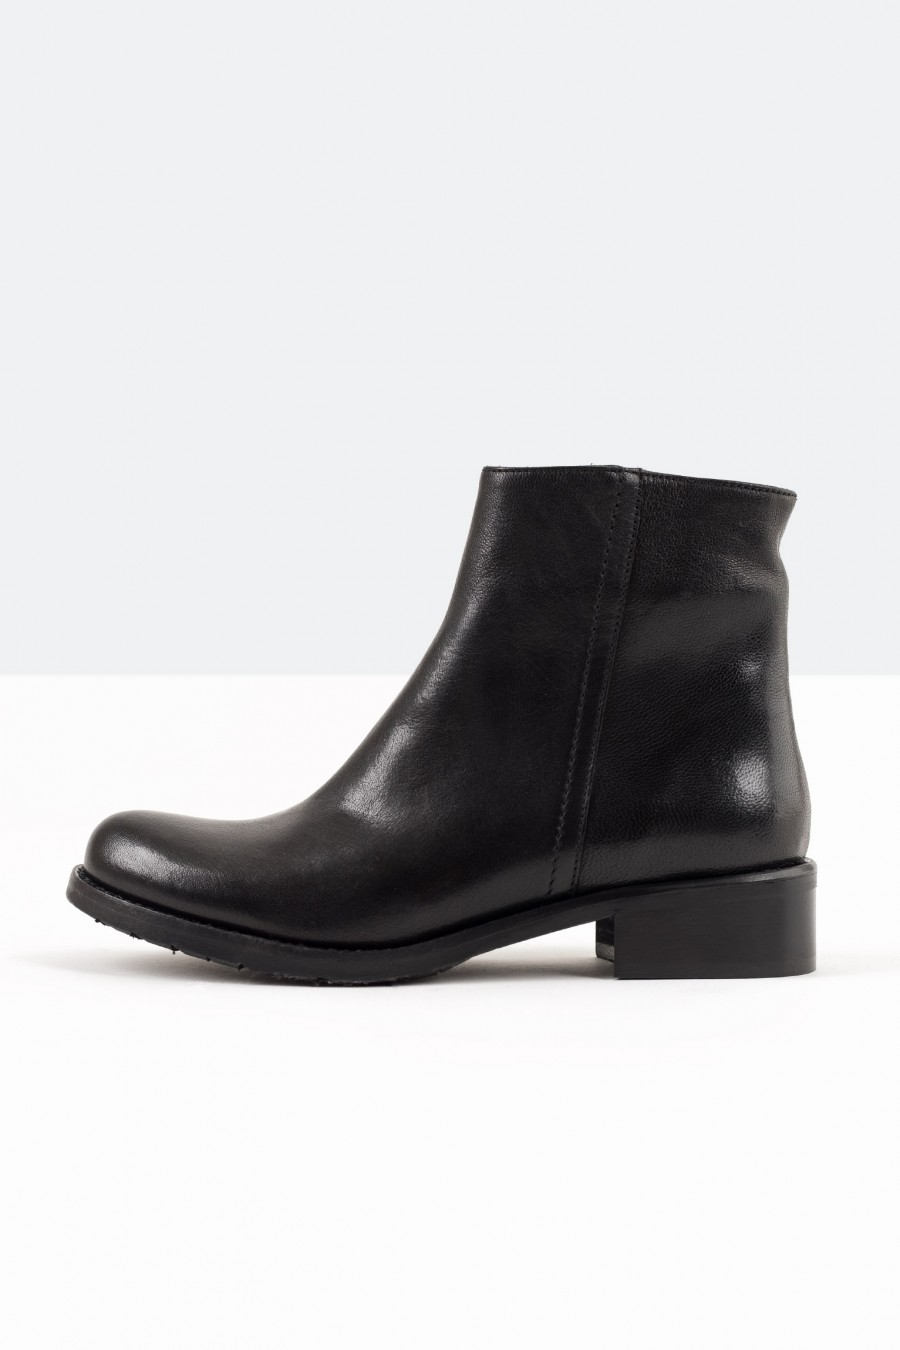 Black leather boots with zip detail